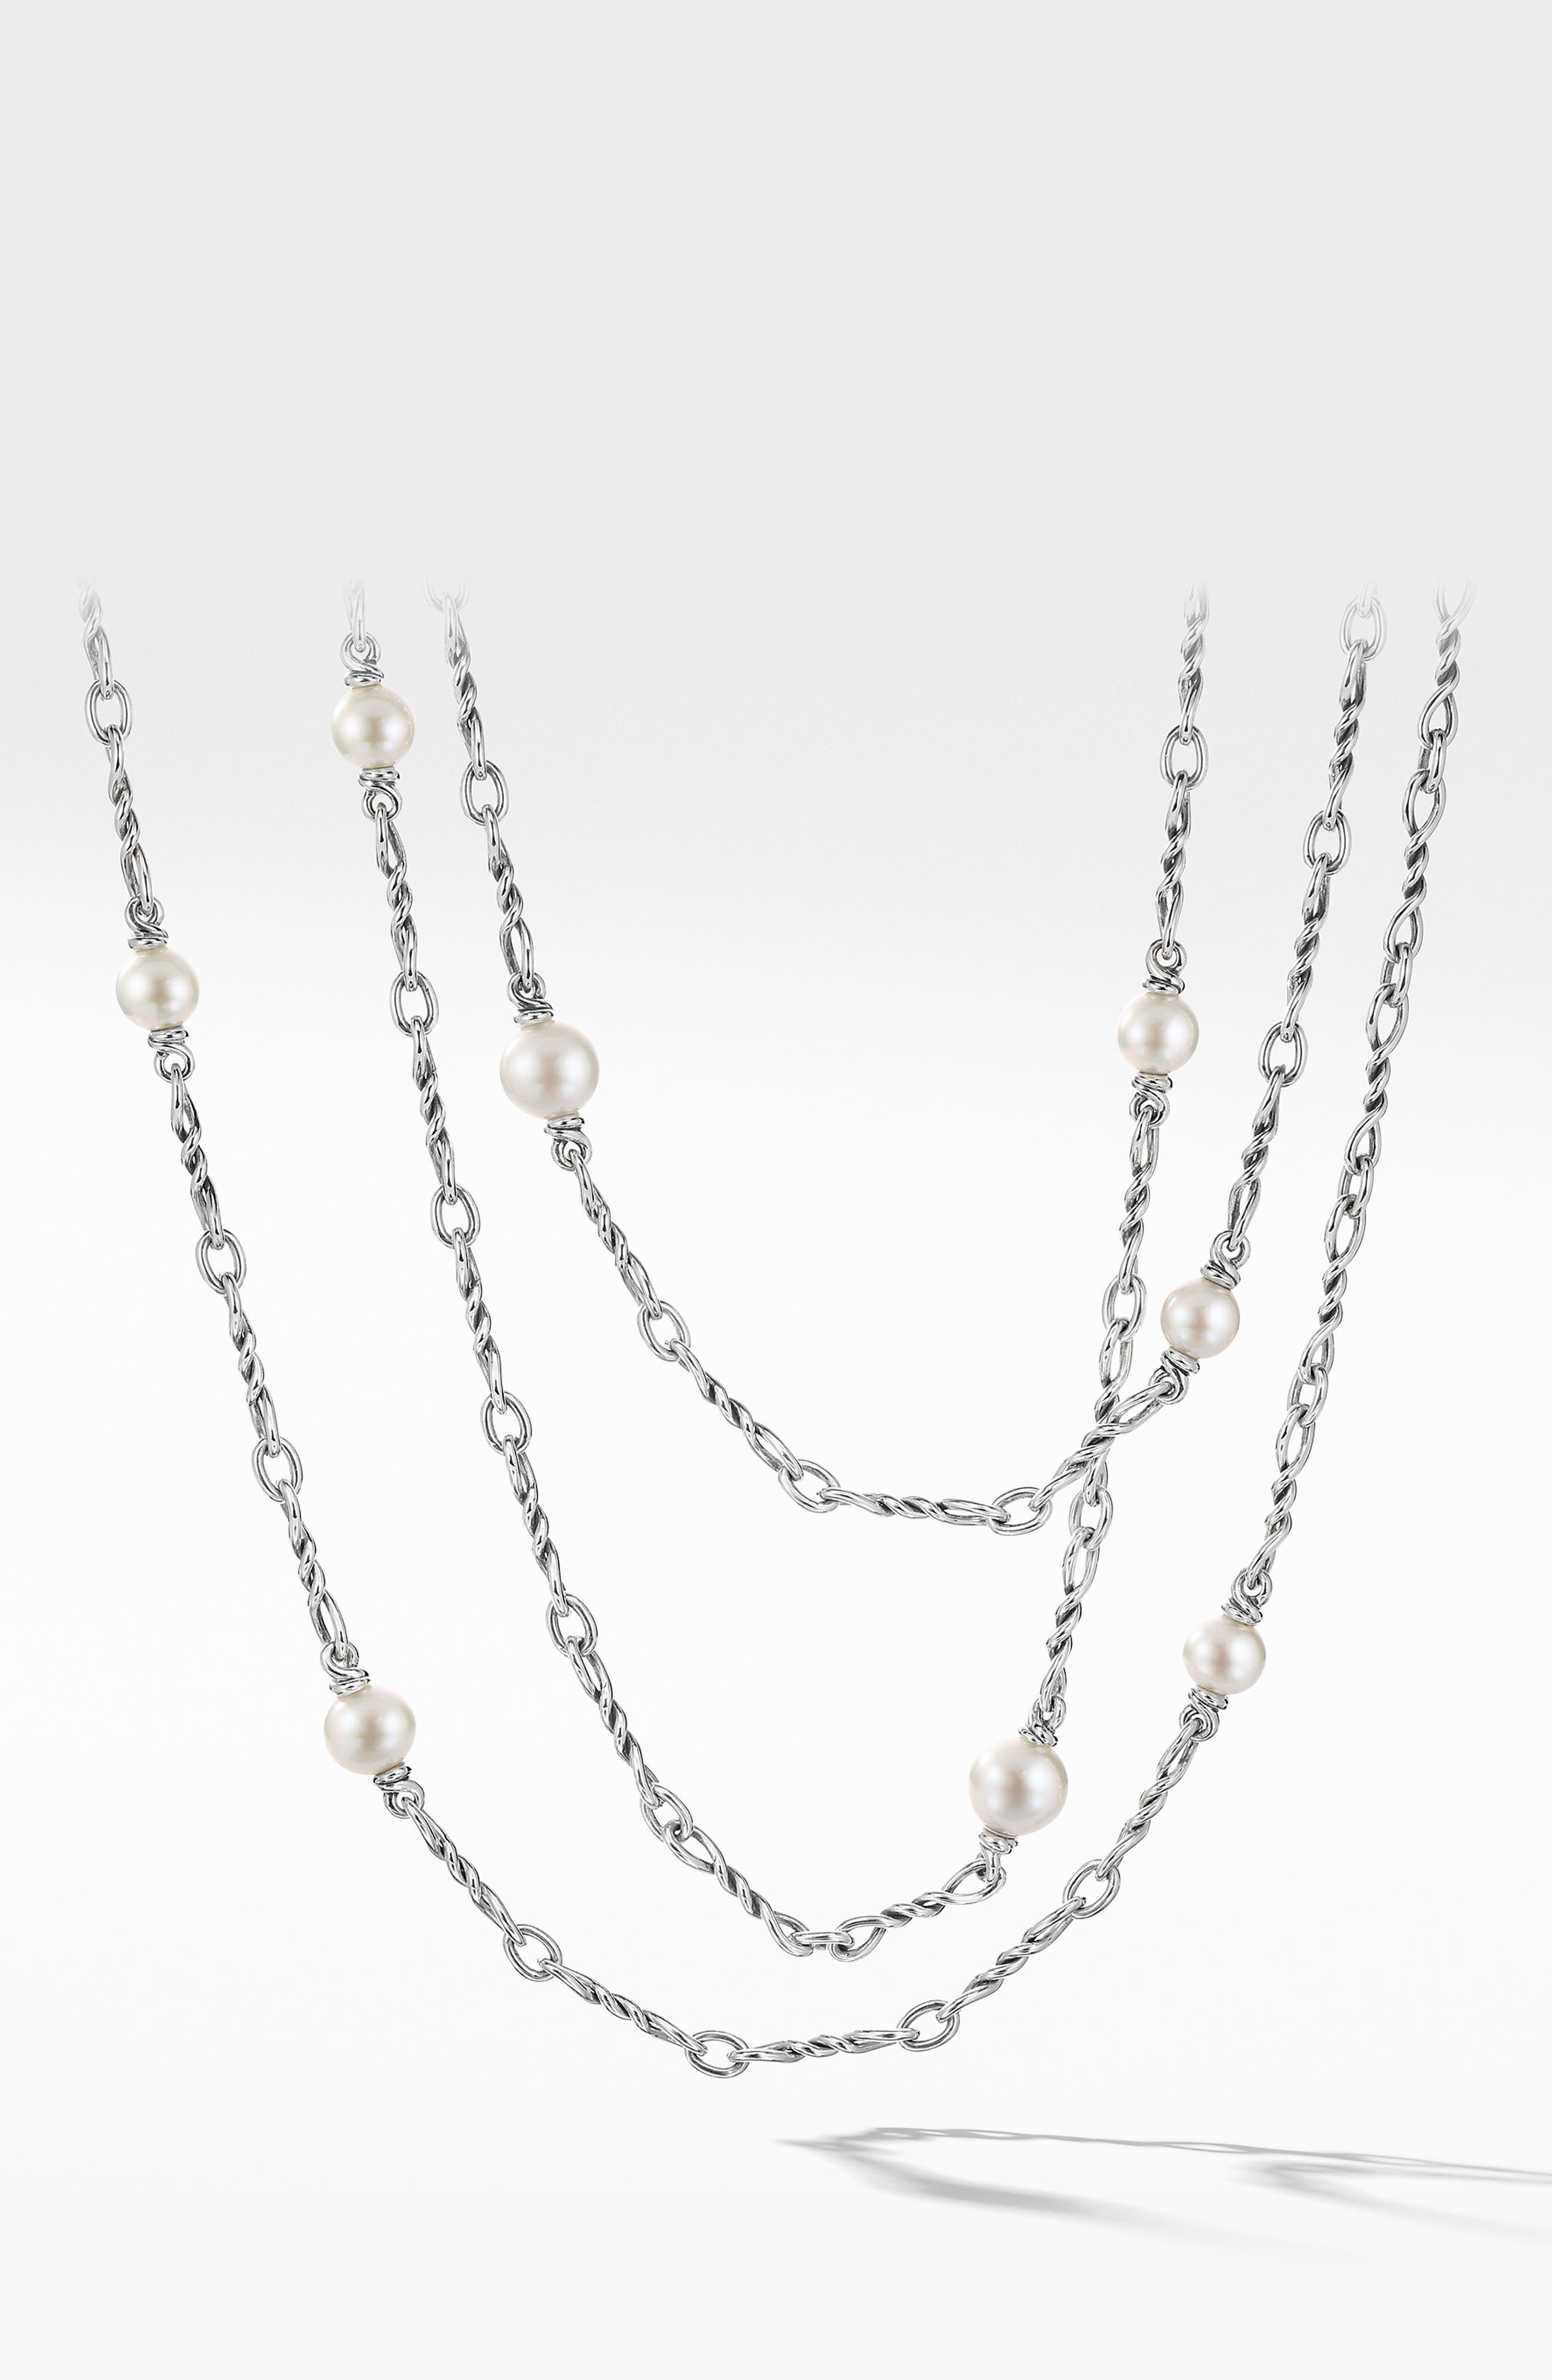 DAVID YURMAN, Continuance Pearl Small Chain Necklace, Main thumbnail 1, color, SILVER/ PEARL